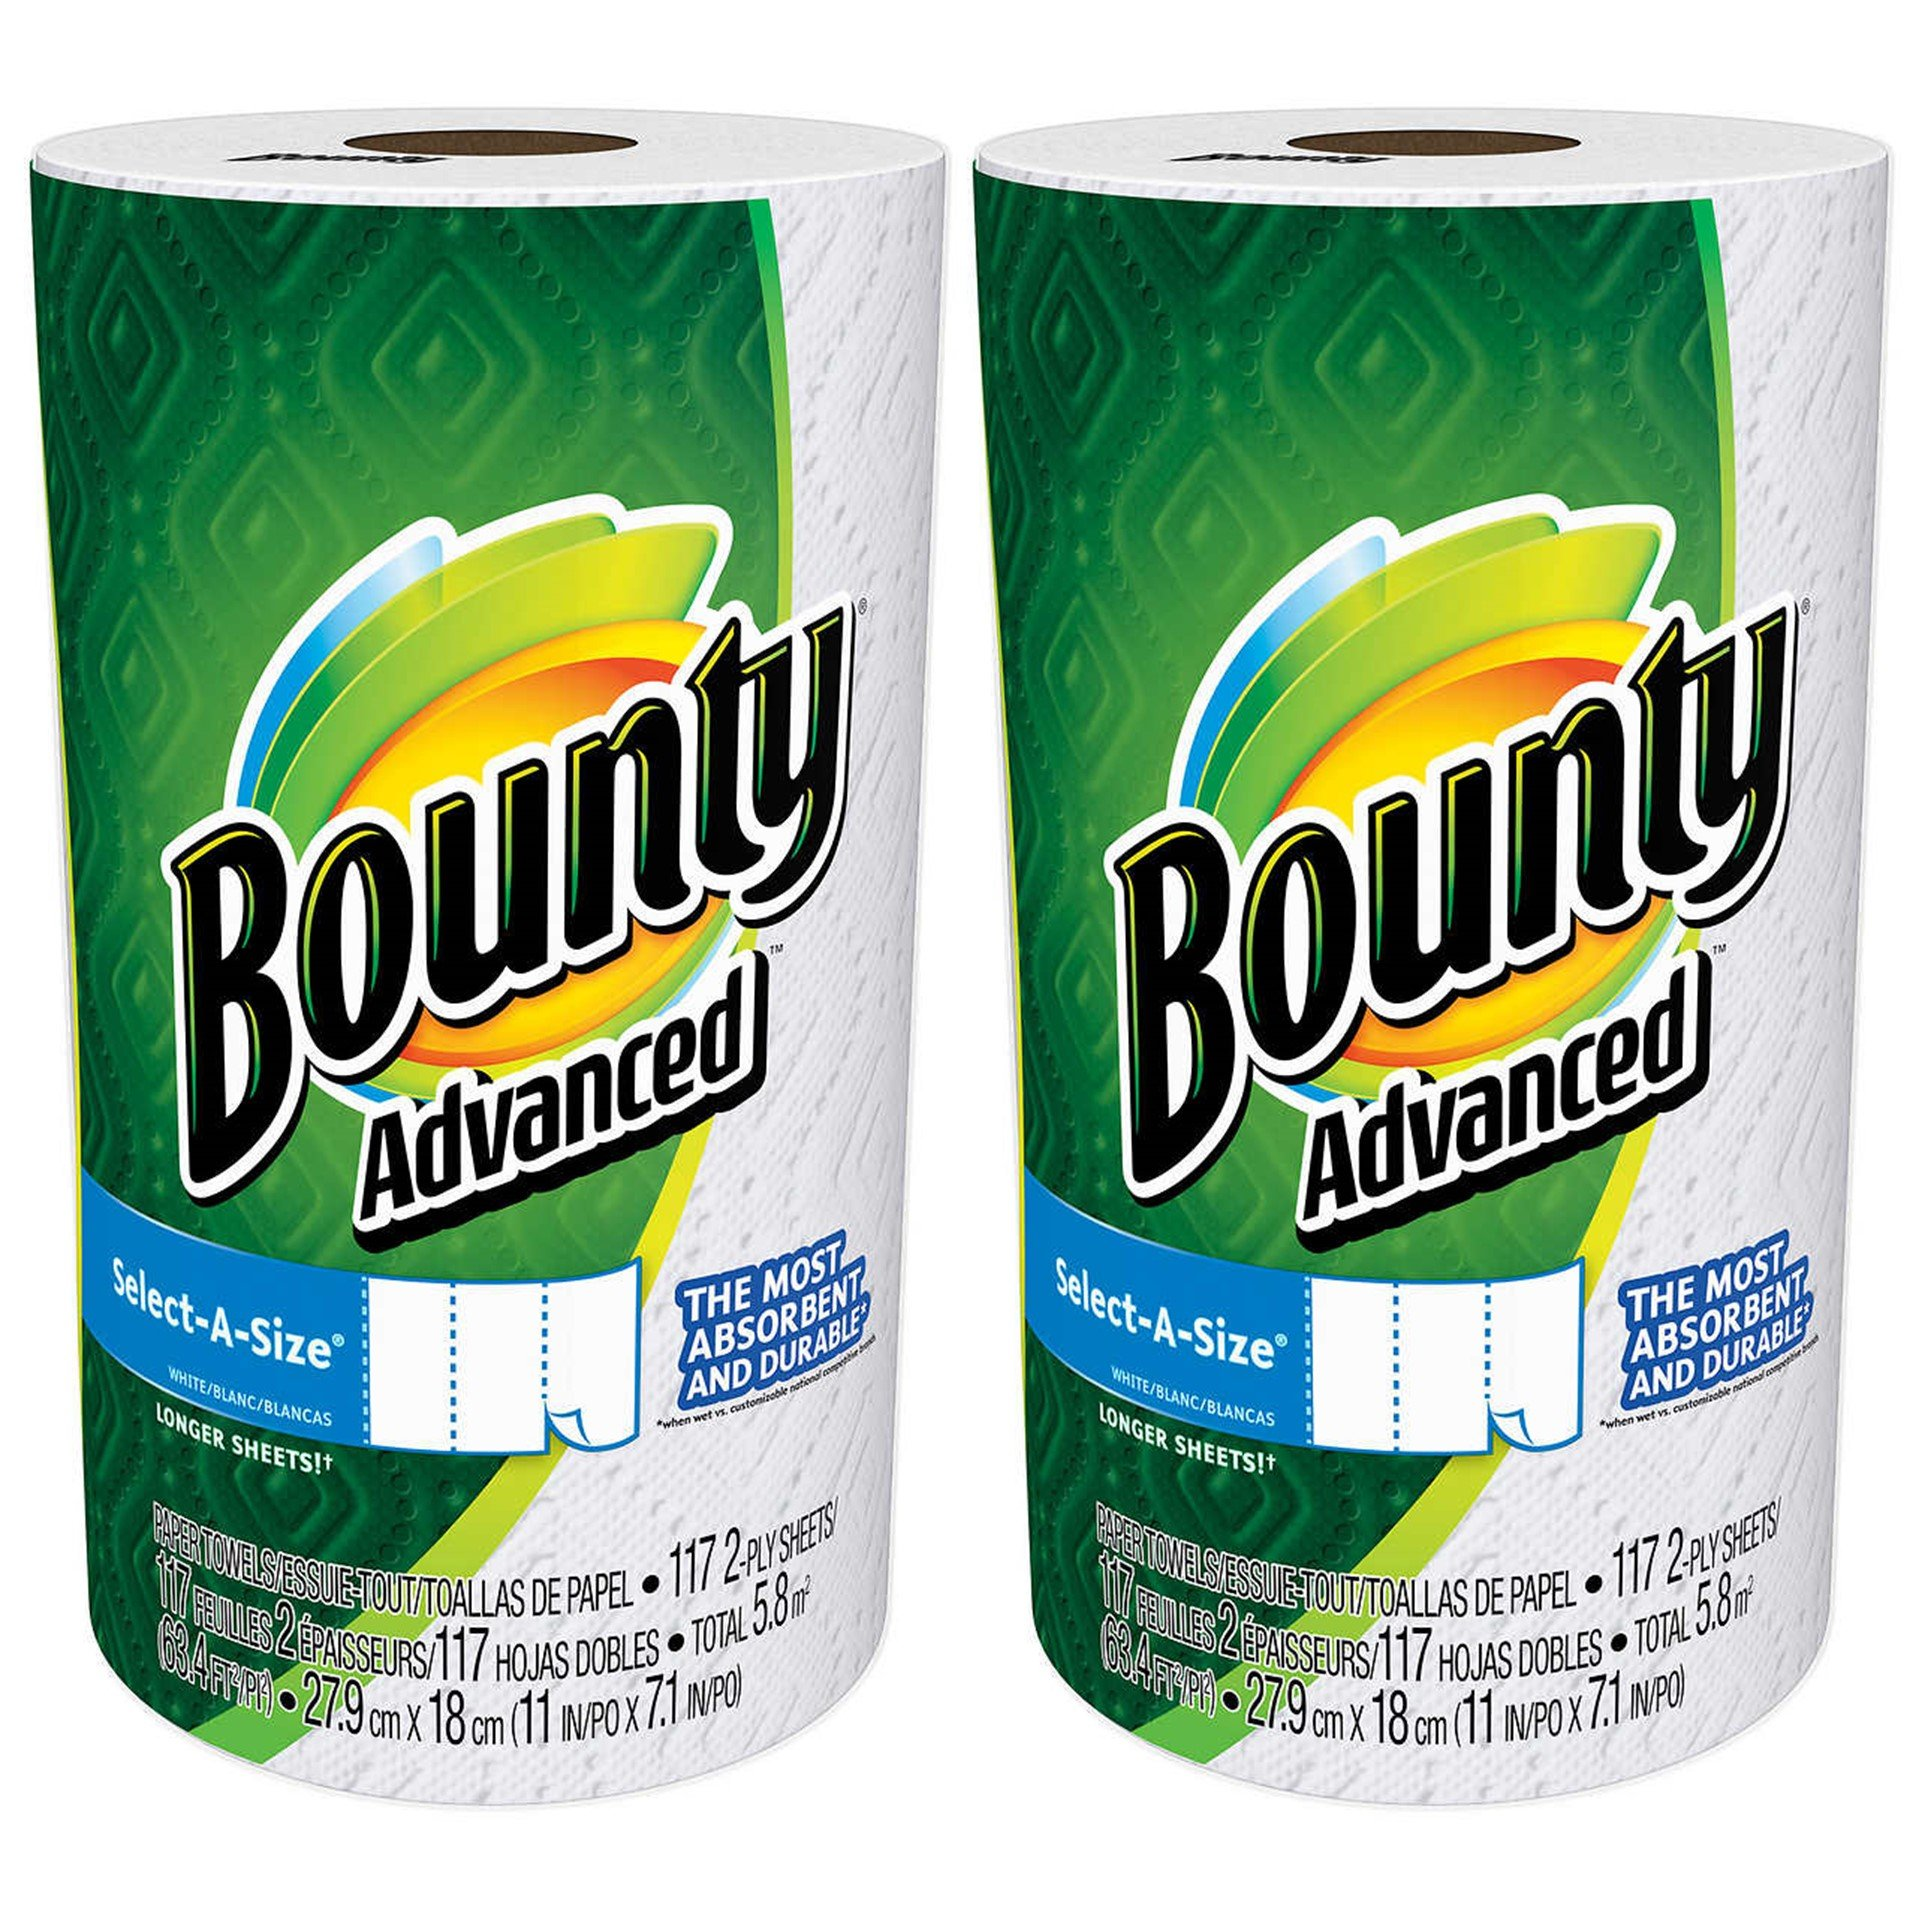 Bounty Advanced Select-A-Size, 2 x More Absorbent Paper Towels Roll,